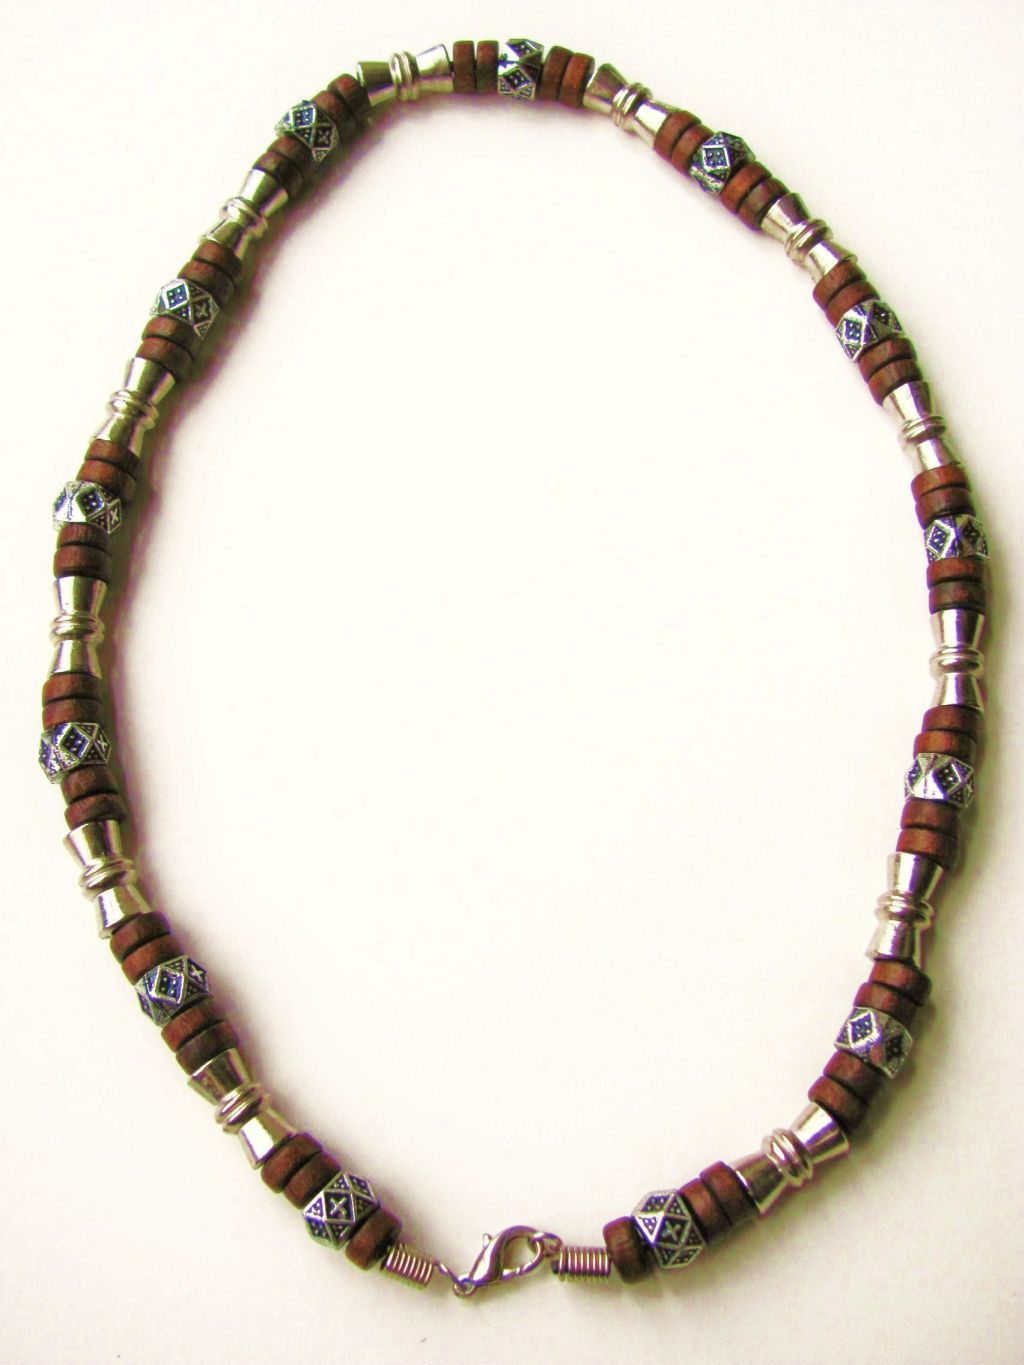 Salem Beach Beaded Necklace, Men's Surfer Style Jewelry Brown